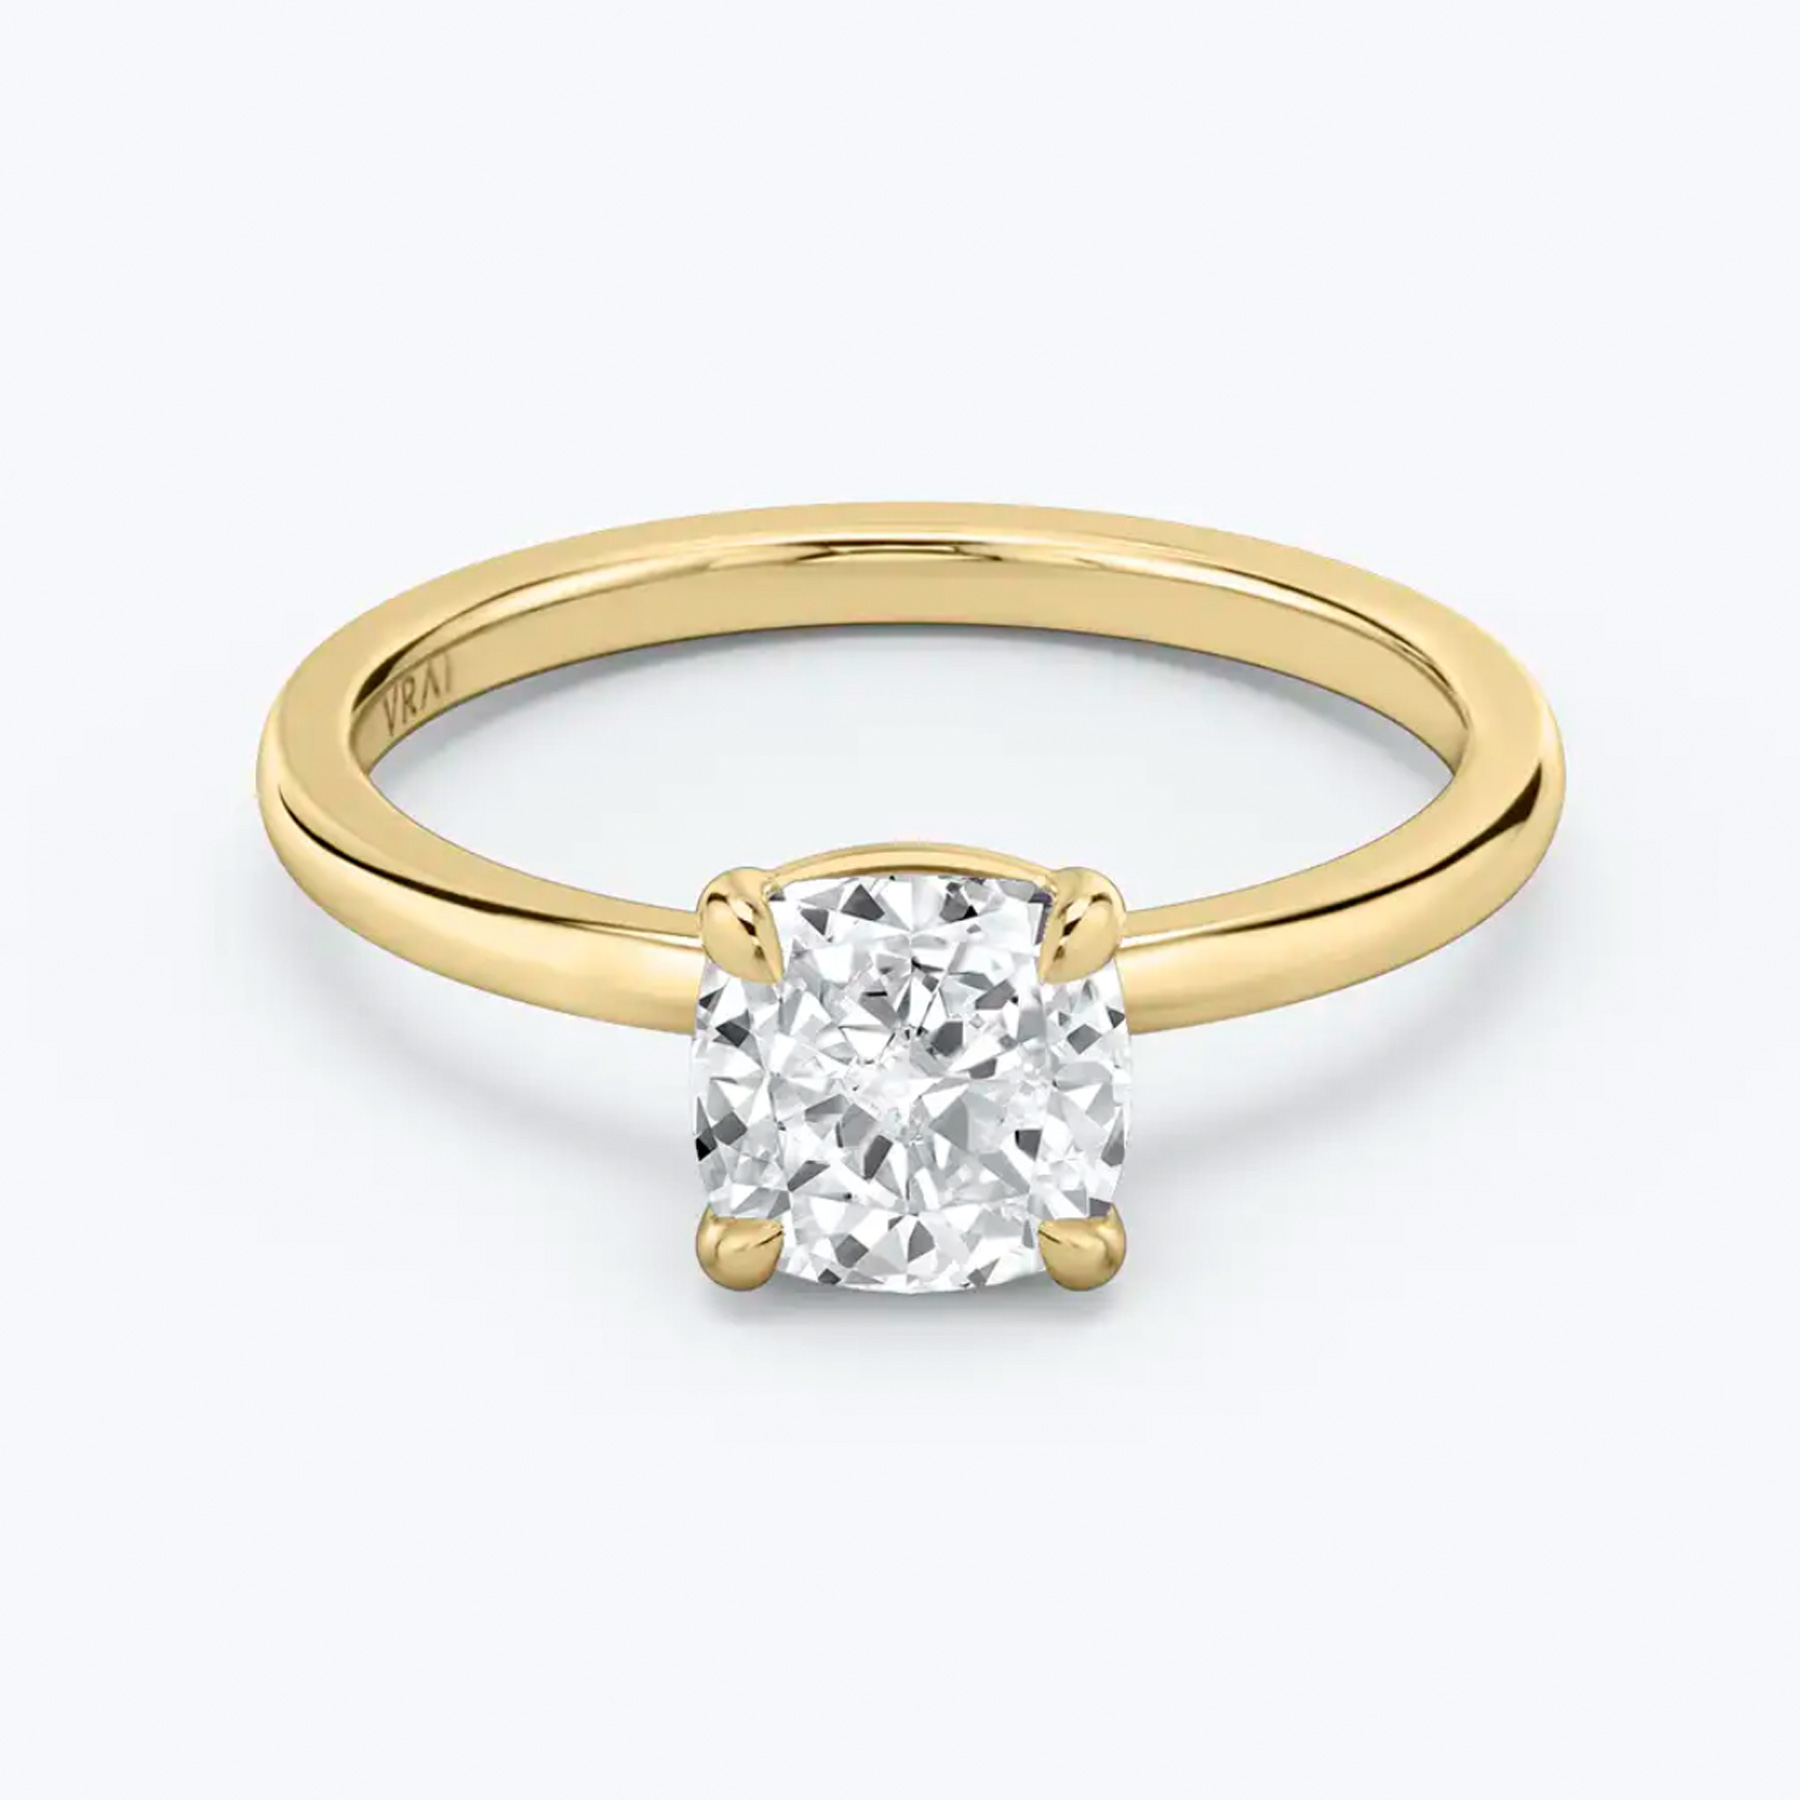 Engagement Ring Trends 2021: Vrai sustainable ethical diamonds, yellow gold and white cushion cut solitaire diamond ring